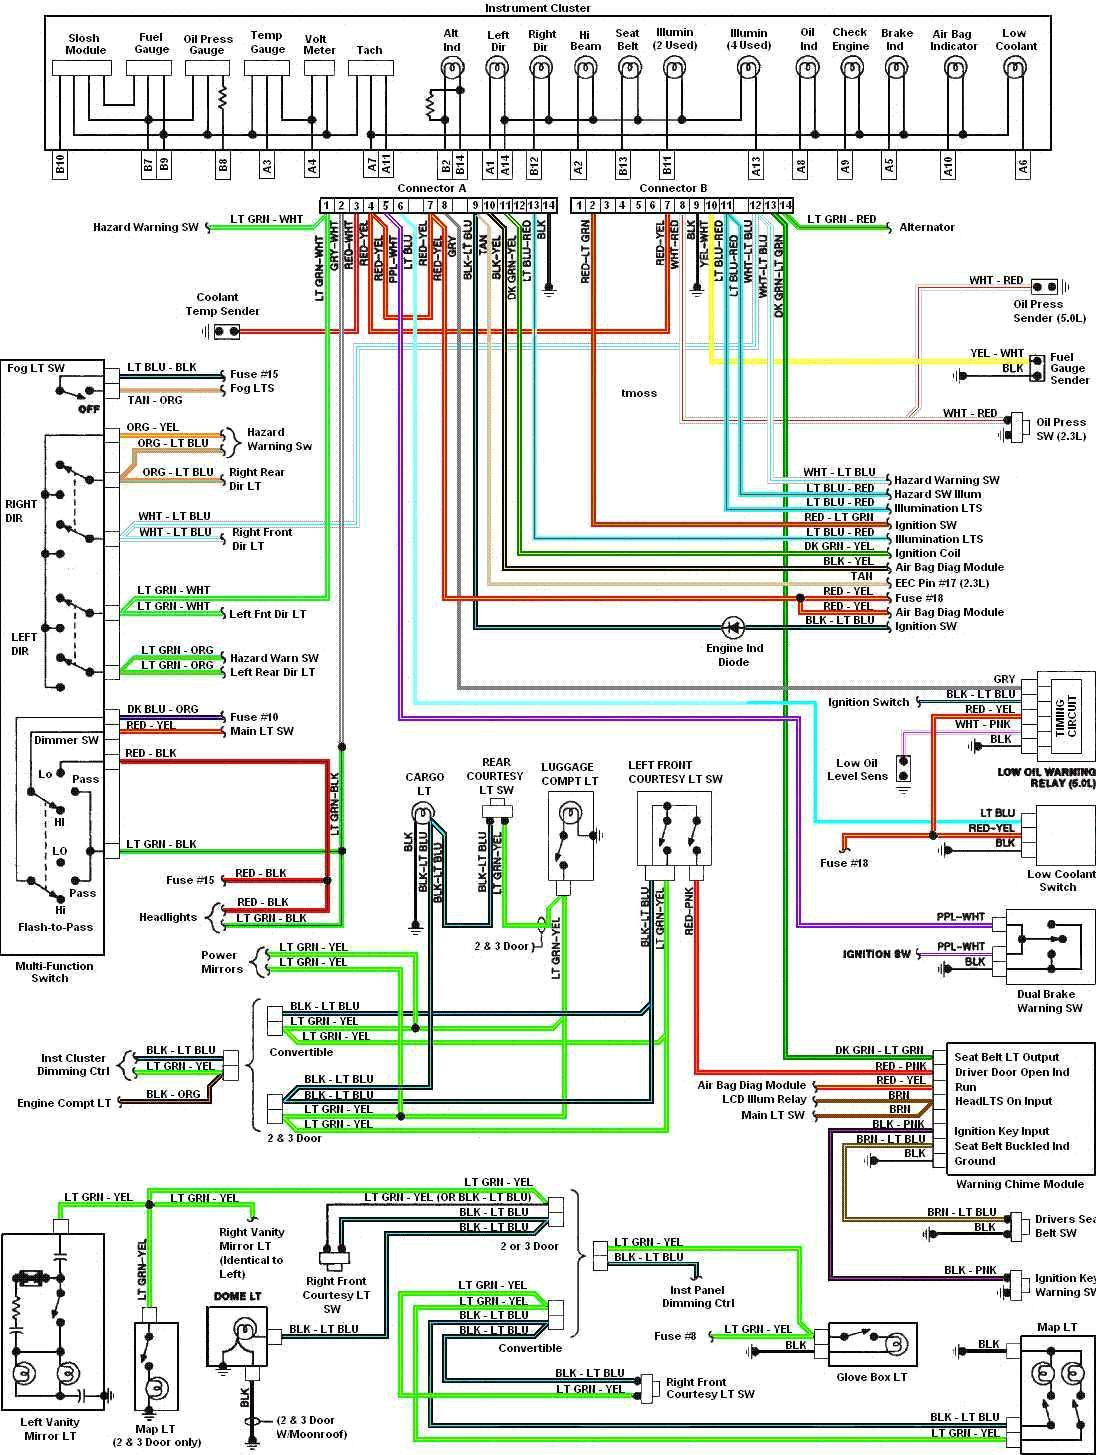 2008 Ford F350 Fuse Diagram - Wiring Diagram Review Ford F Trailer Wiring Diagram on